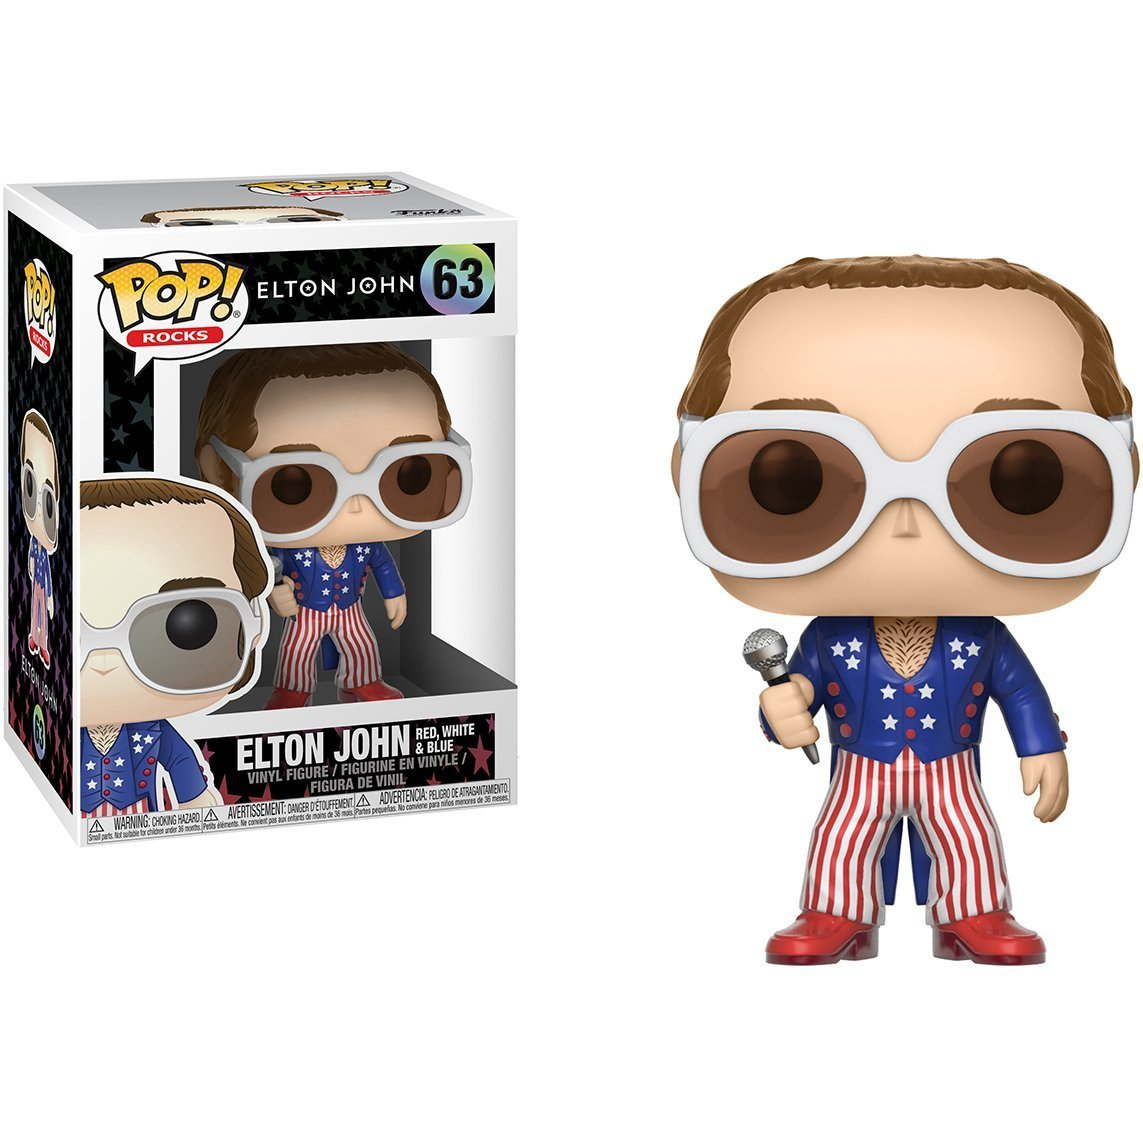 Elton John Greatest Hits Pop 10cm Figurine Rocks